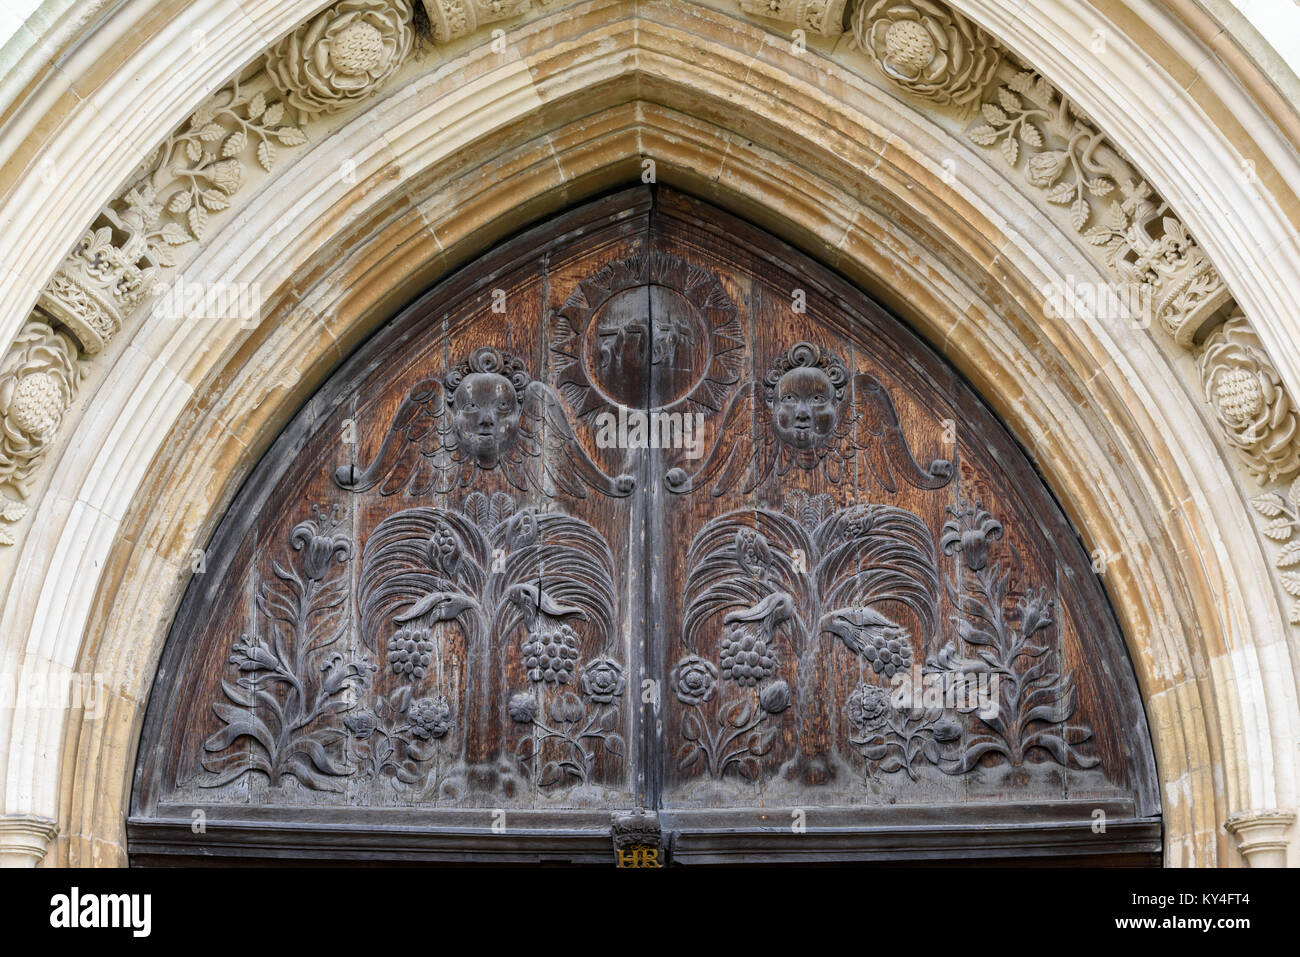 Wooden carvings on the top section of the west door at the chapel of King's college, university of Cambridge, - Stock Image